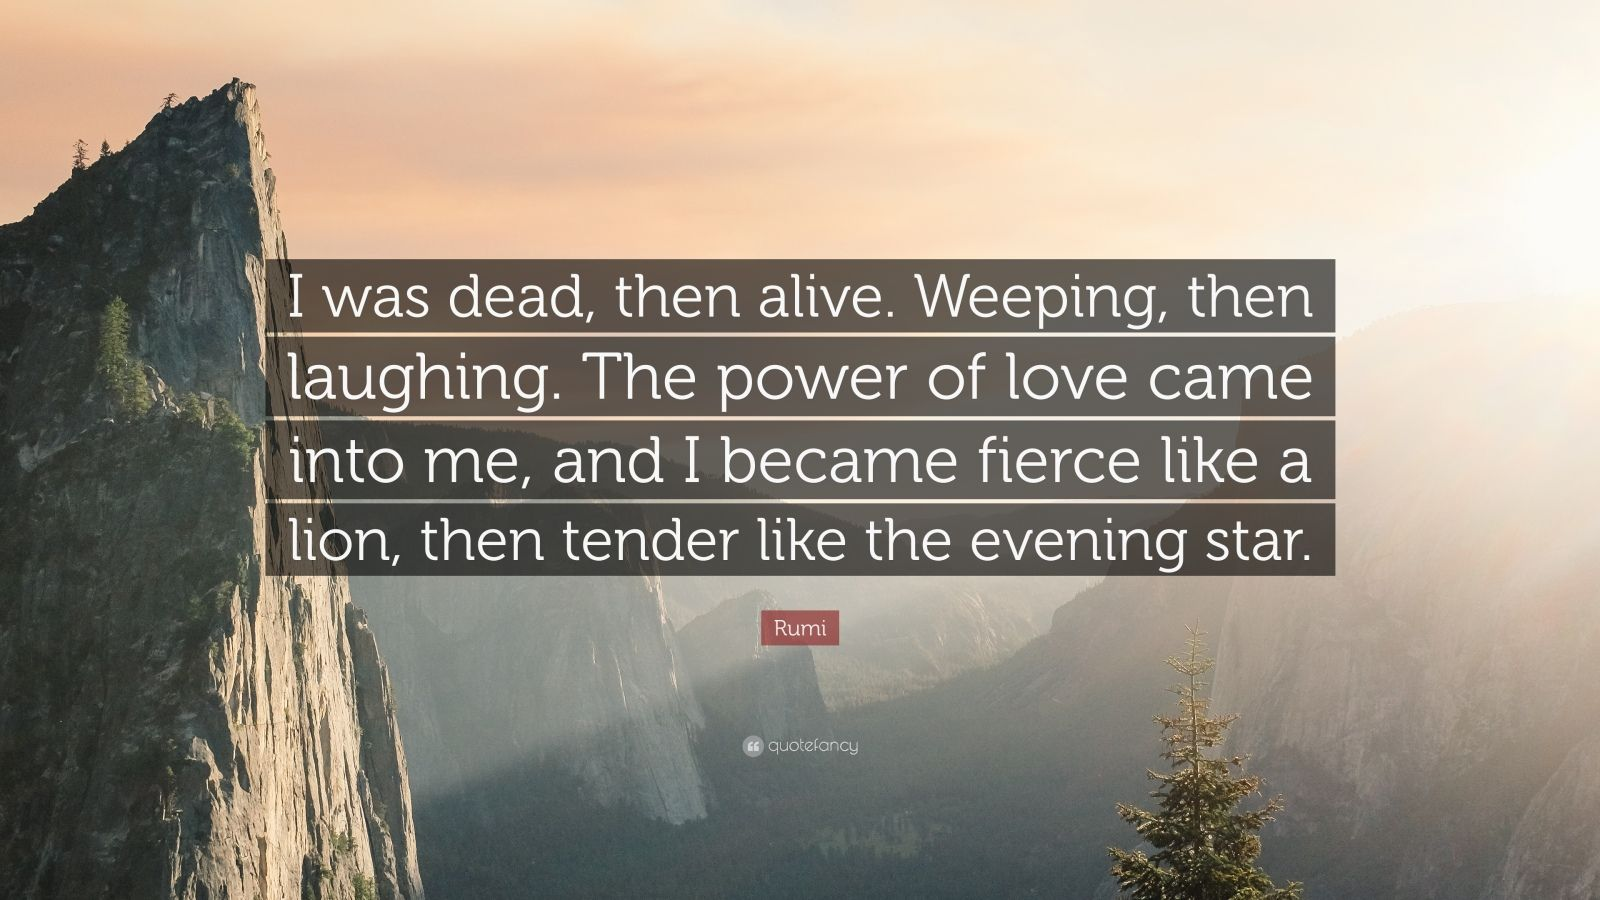 """Rumi Quote: """"I was dead, then alive. Weeping, then laughing. The power of love came into me, and I became fierce like a lion, then tender like the evening star."""""""